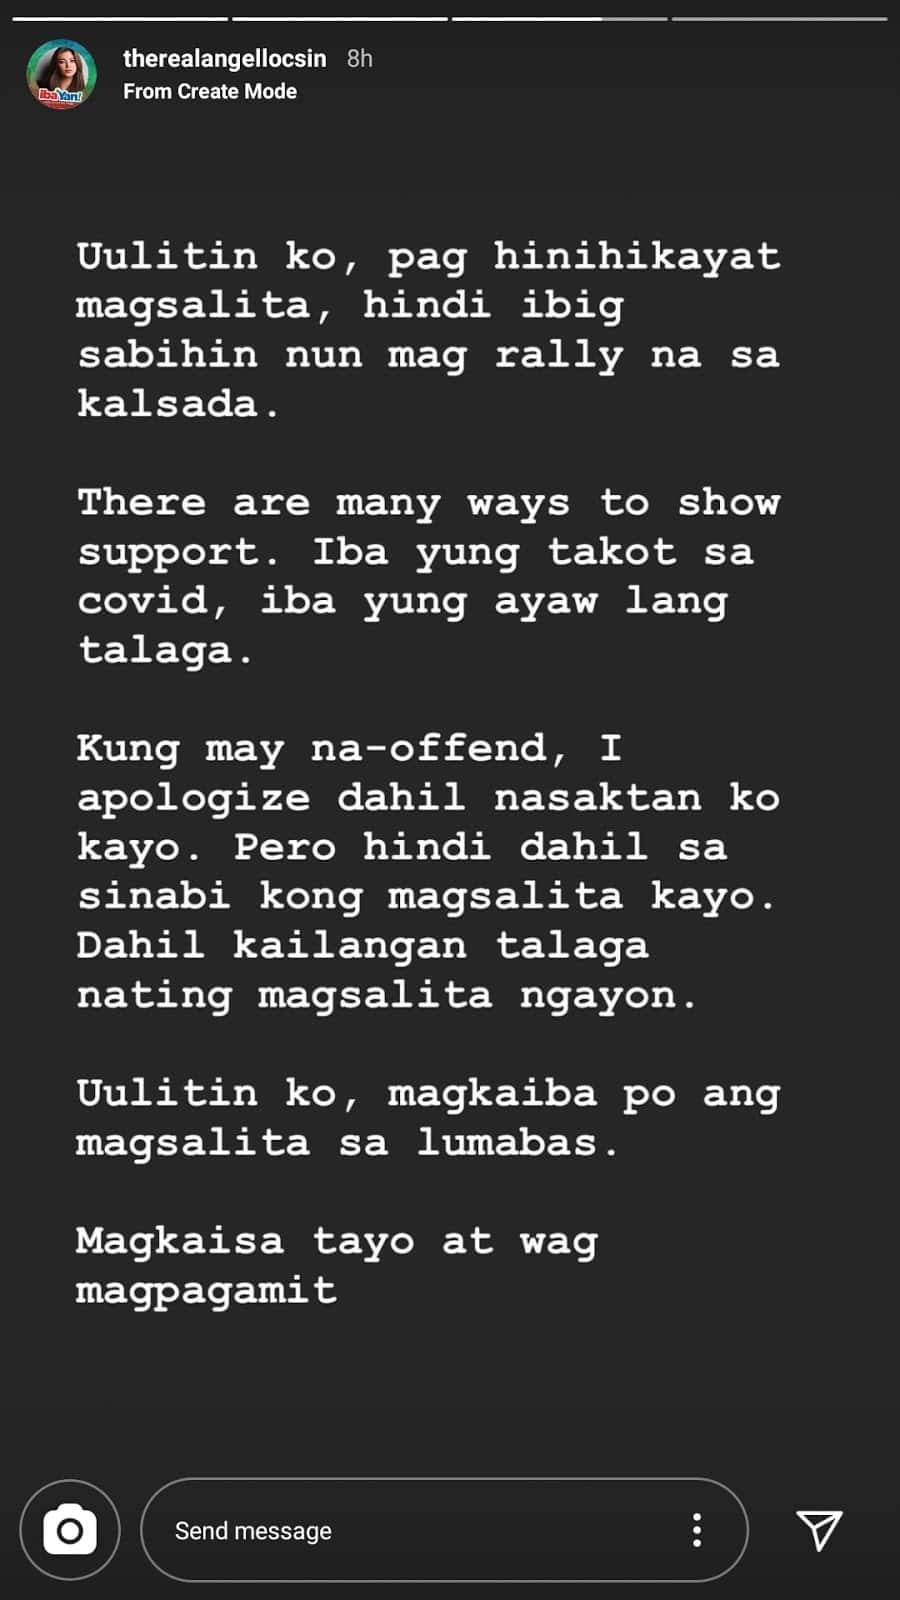 Angel Locsin comments on celebs who use COVID as reason for not speaking up